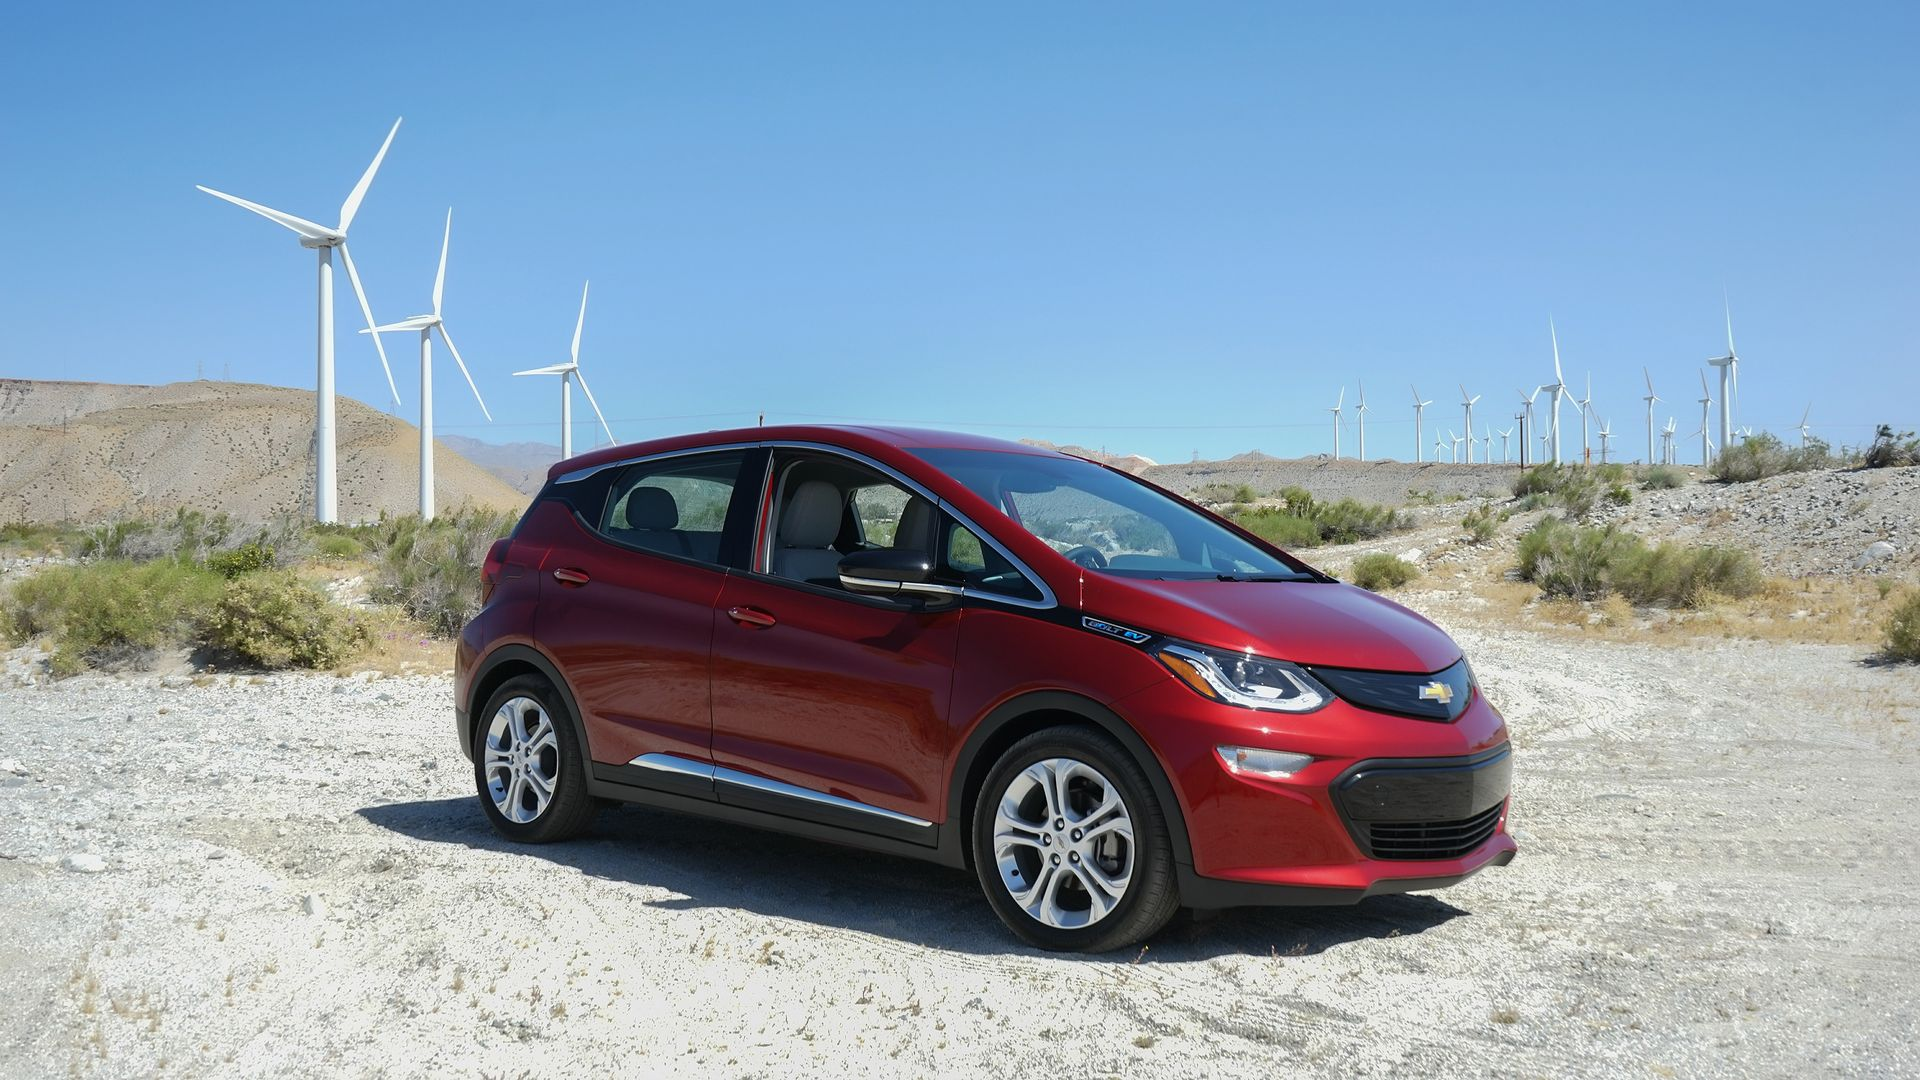 38 All New 2019 Chevy Bolt New Concept